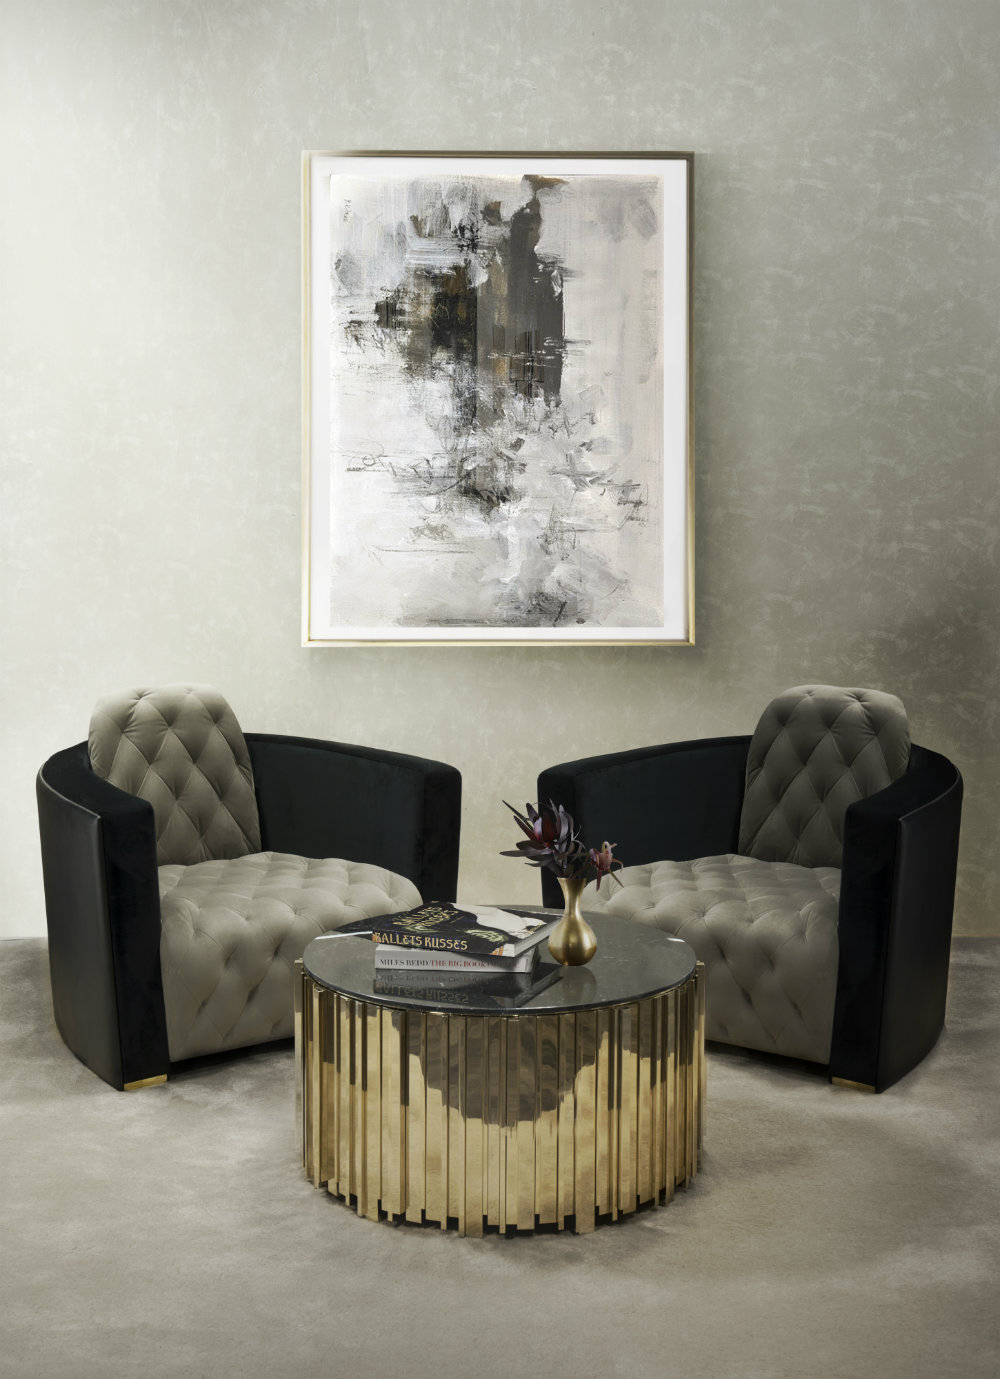 Luxury Center Tables You Need To Add To Your Home Décor 05 Luxury Center  Tables Luxury